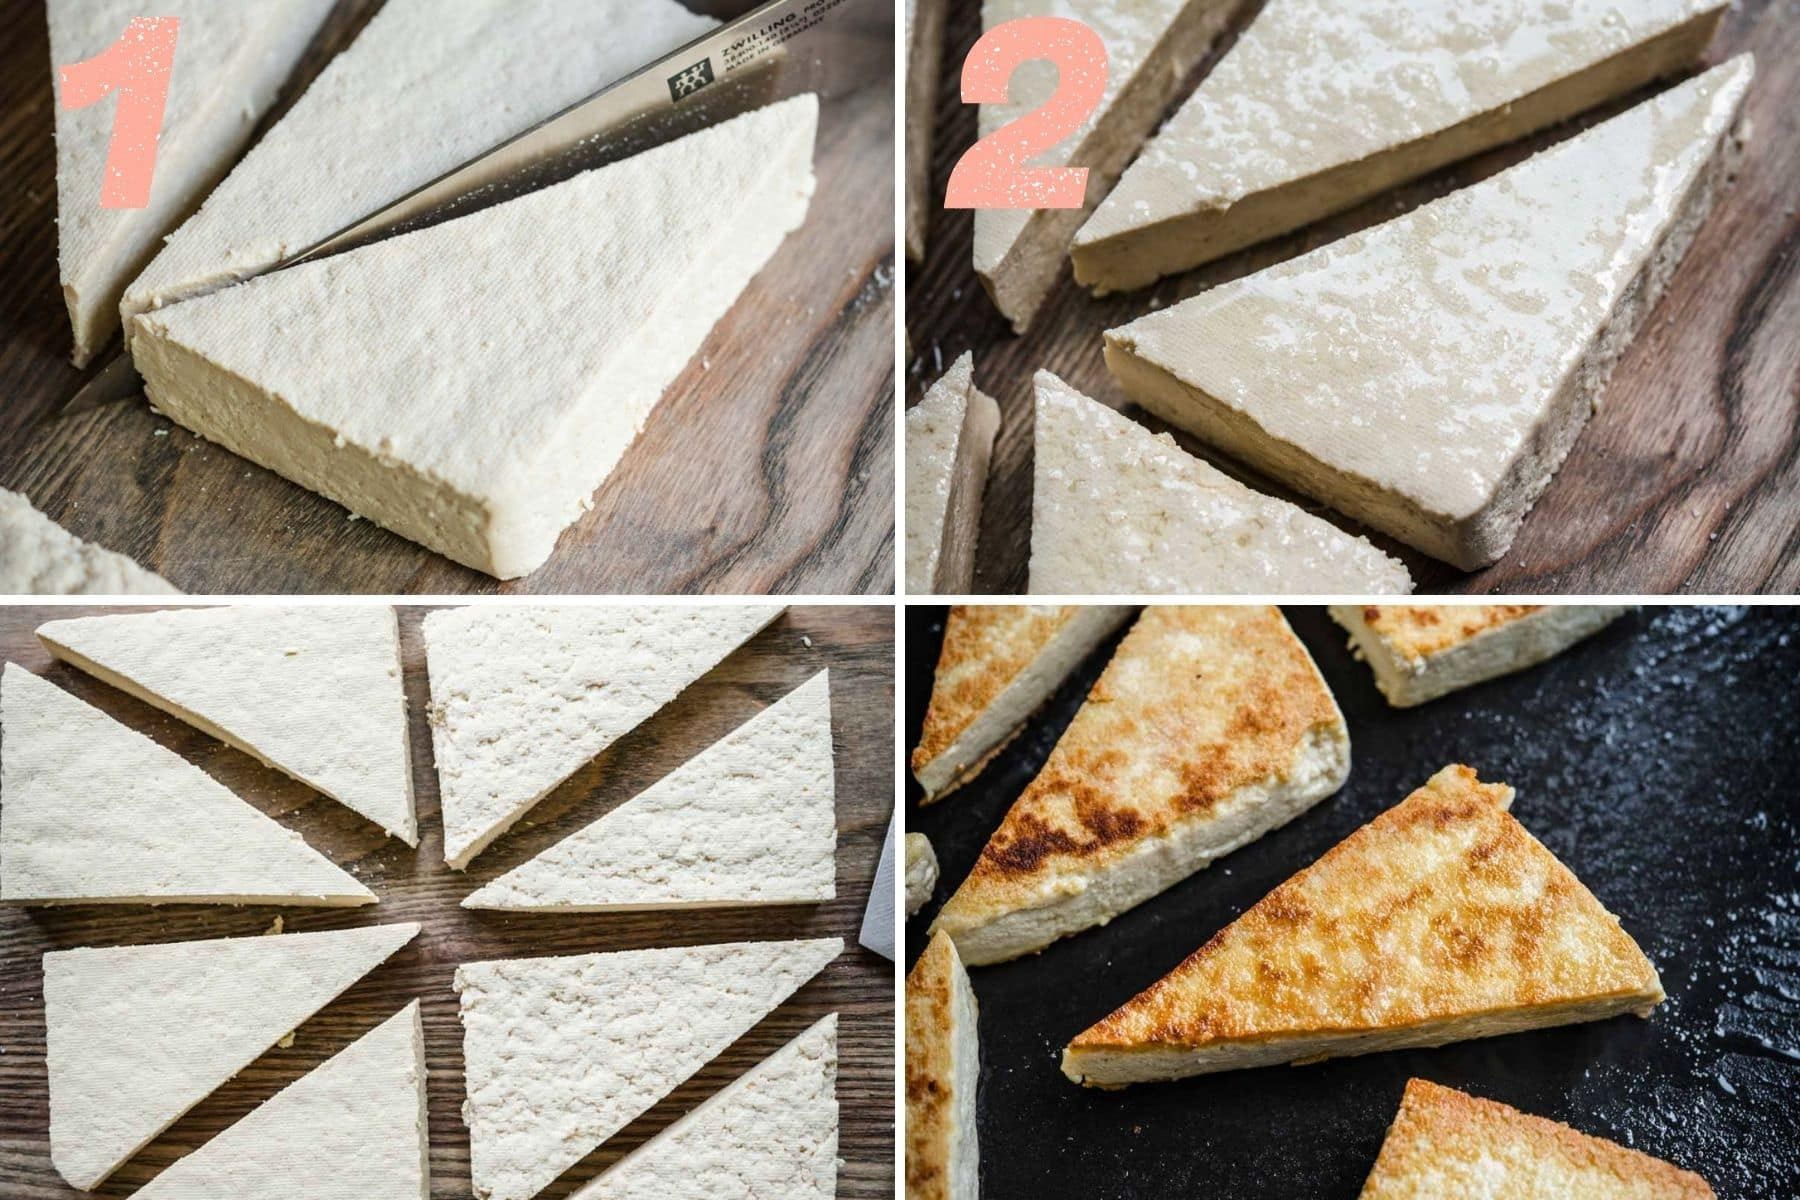 On the left: tofu being cut into triangles. On the right: tofu brushed with olive oil and crisped up.